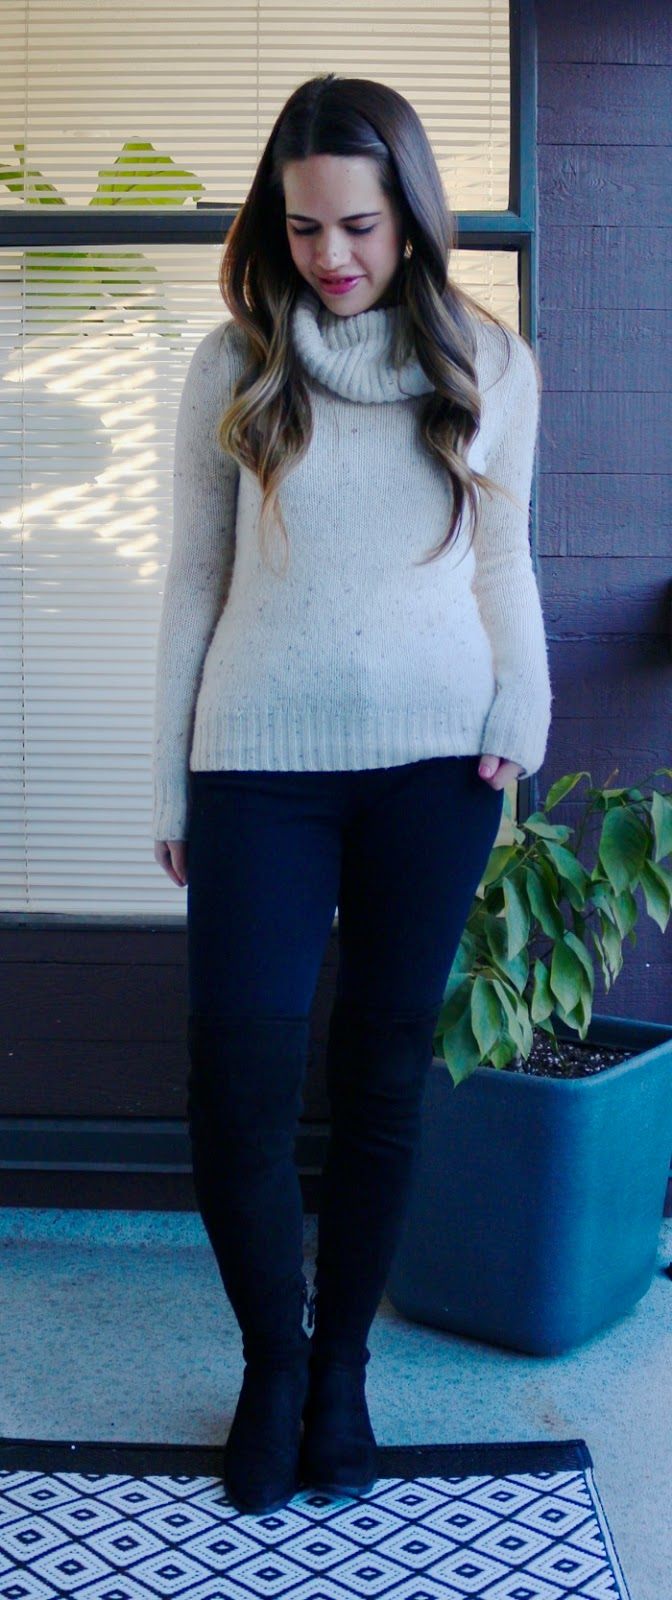 Jules in Flats - Creamy Turtleneck with OTK Boots for Work